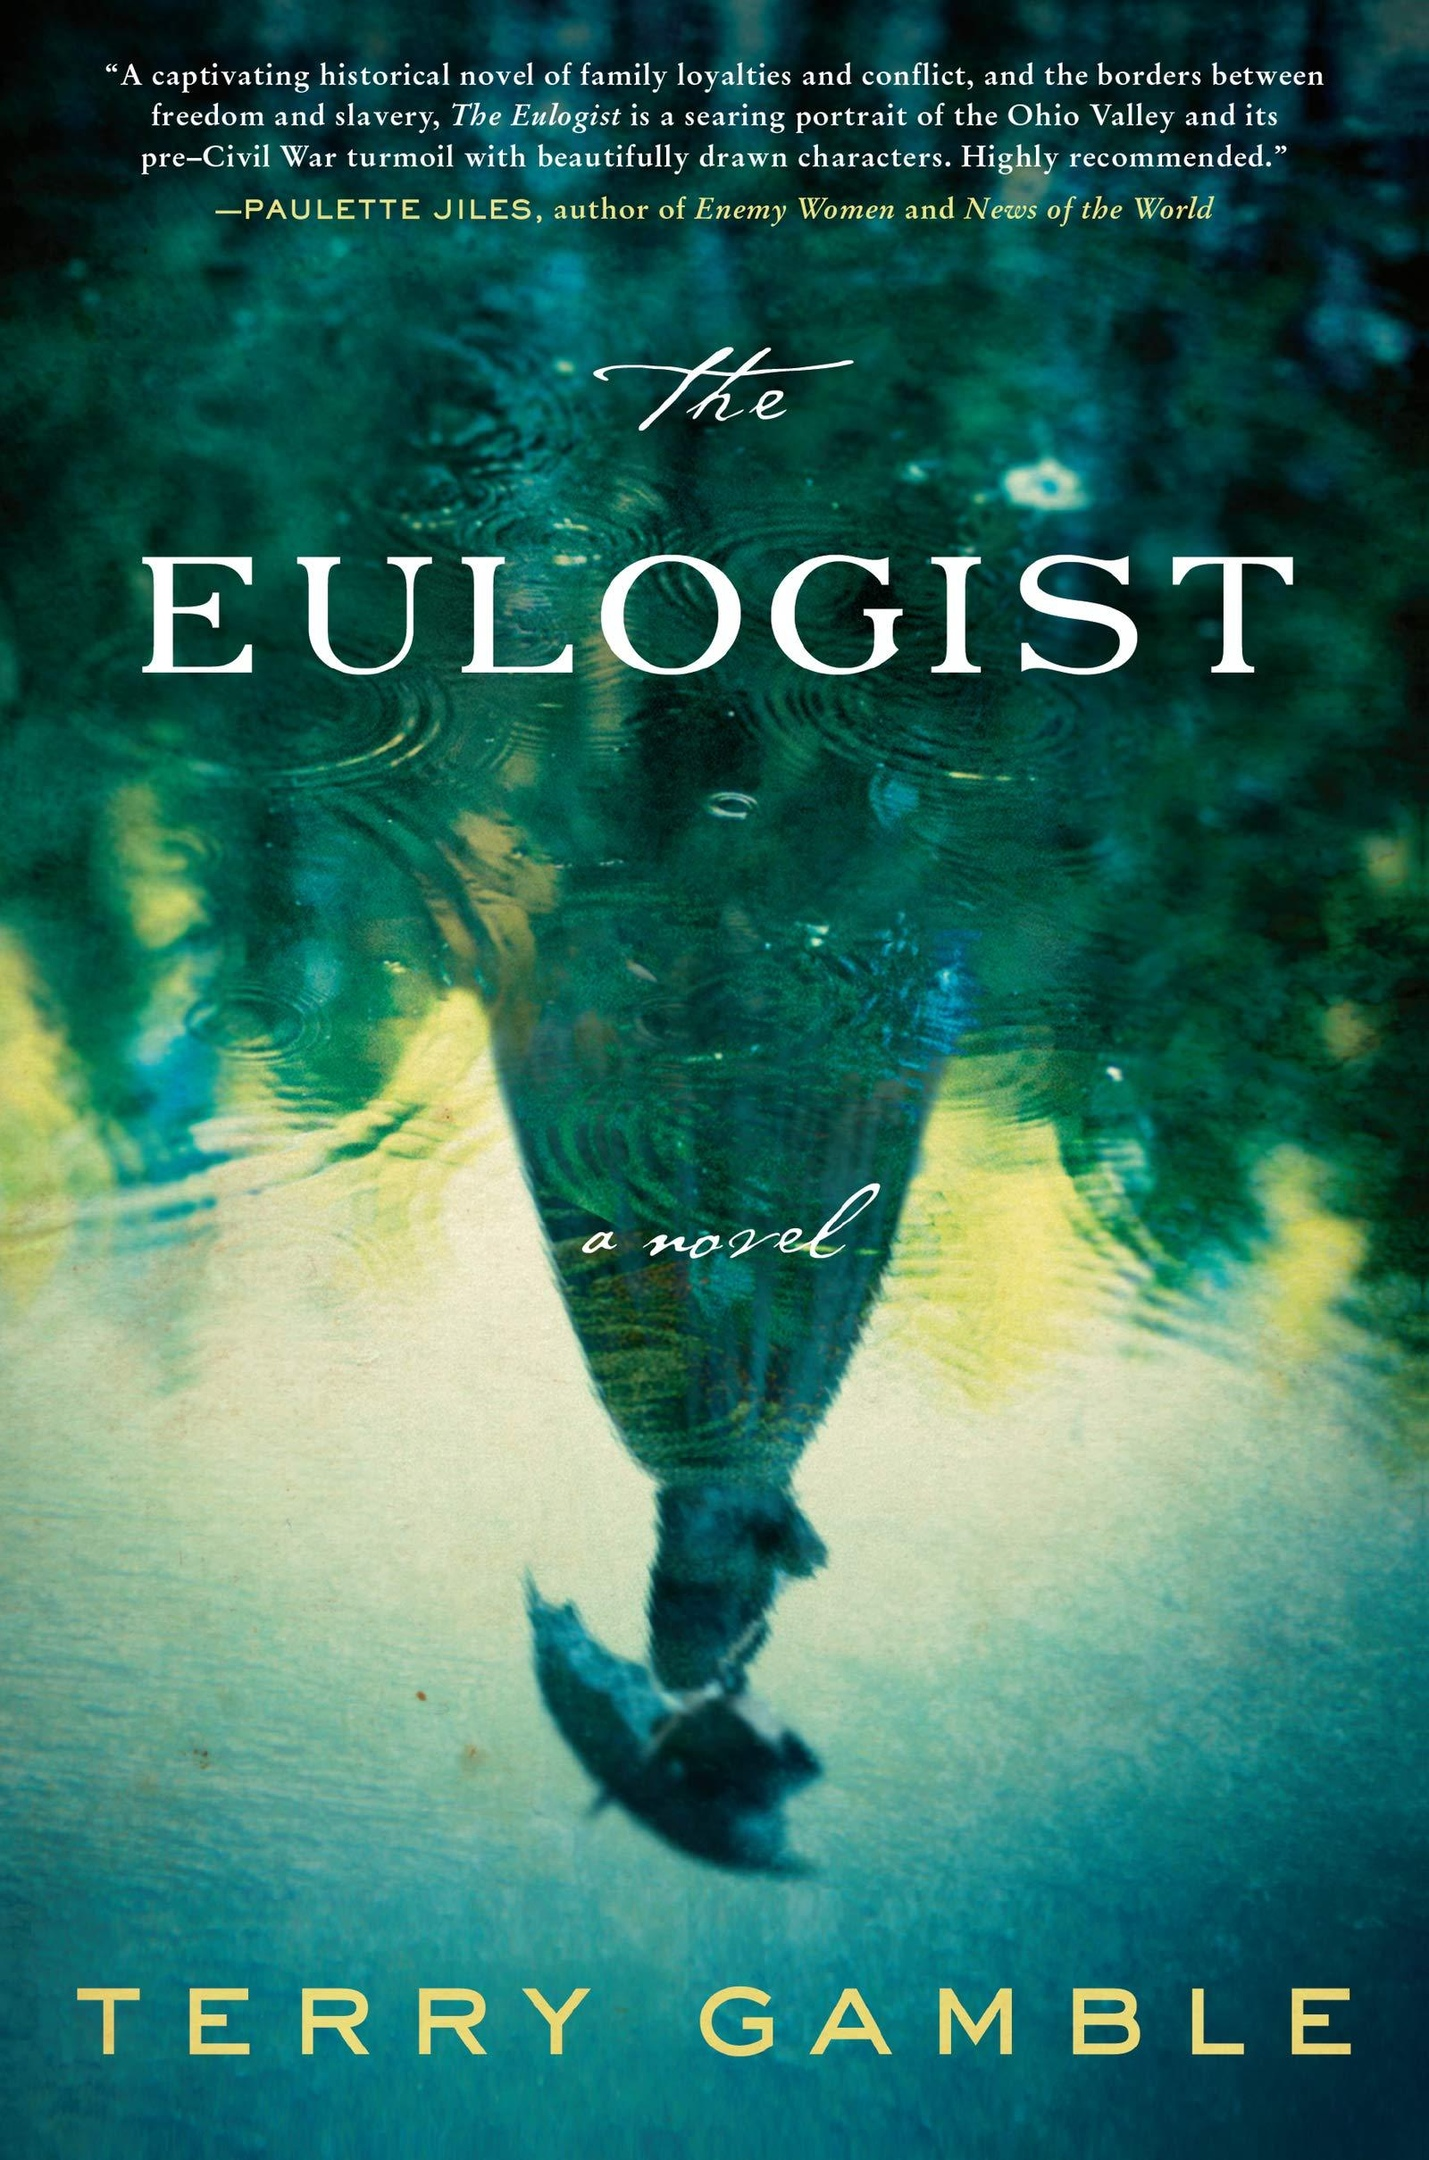 Terry Gamble – The Eulogist Genre: Author: